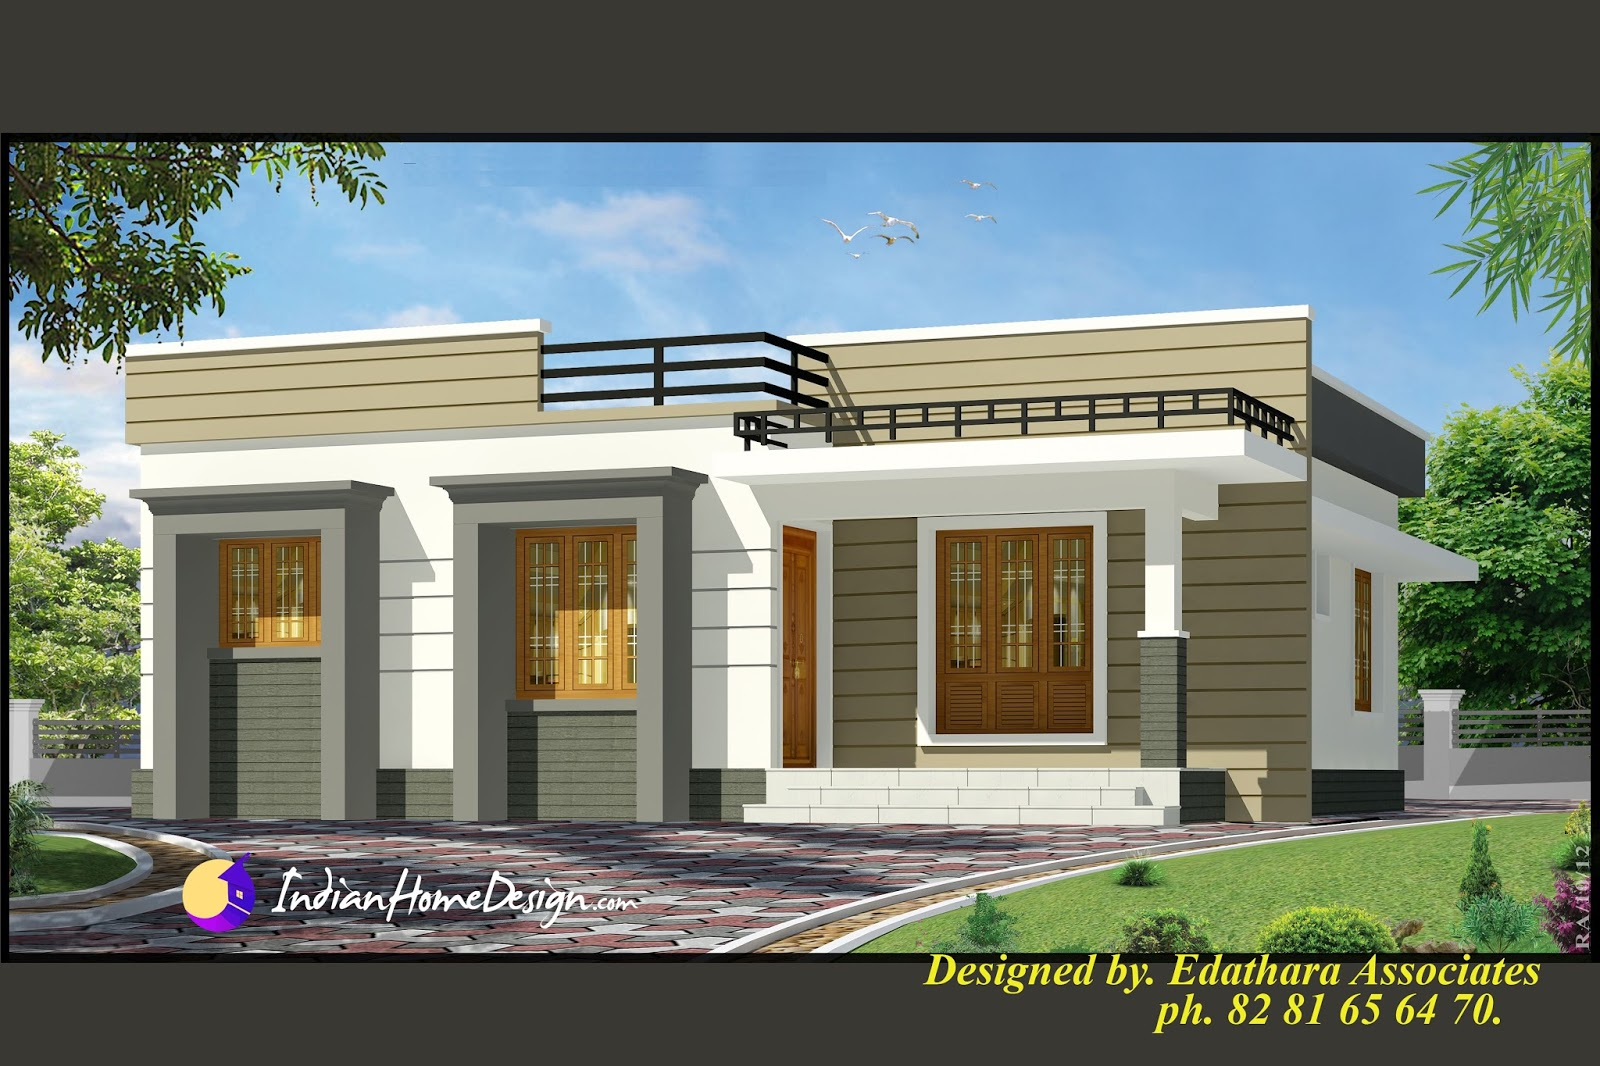 998 sqft modern single floor kerala home design indian Home design sites